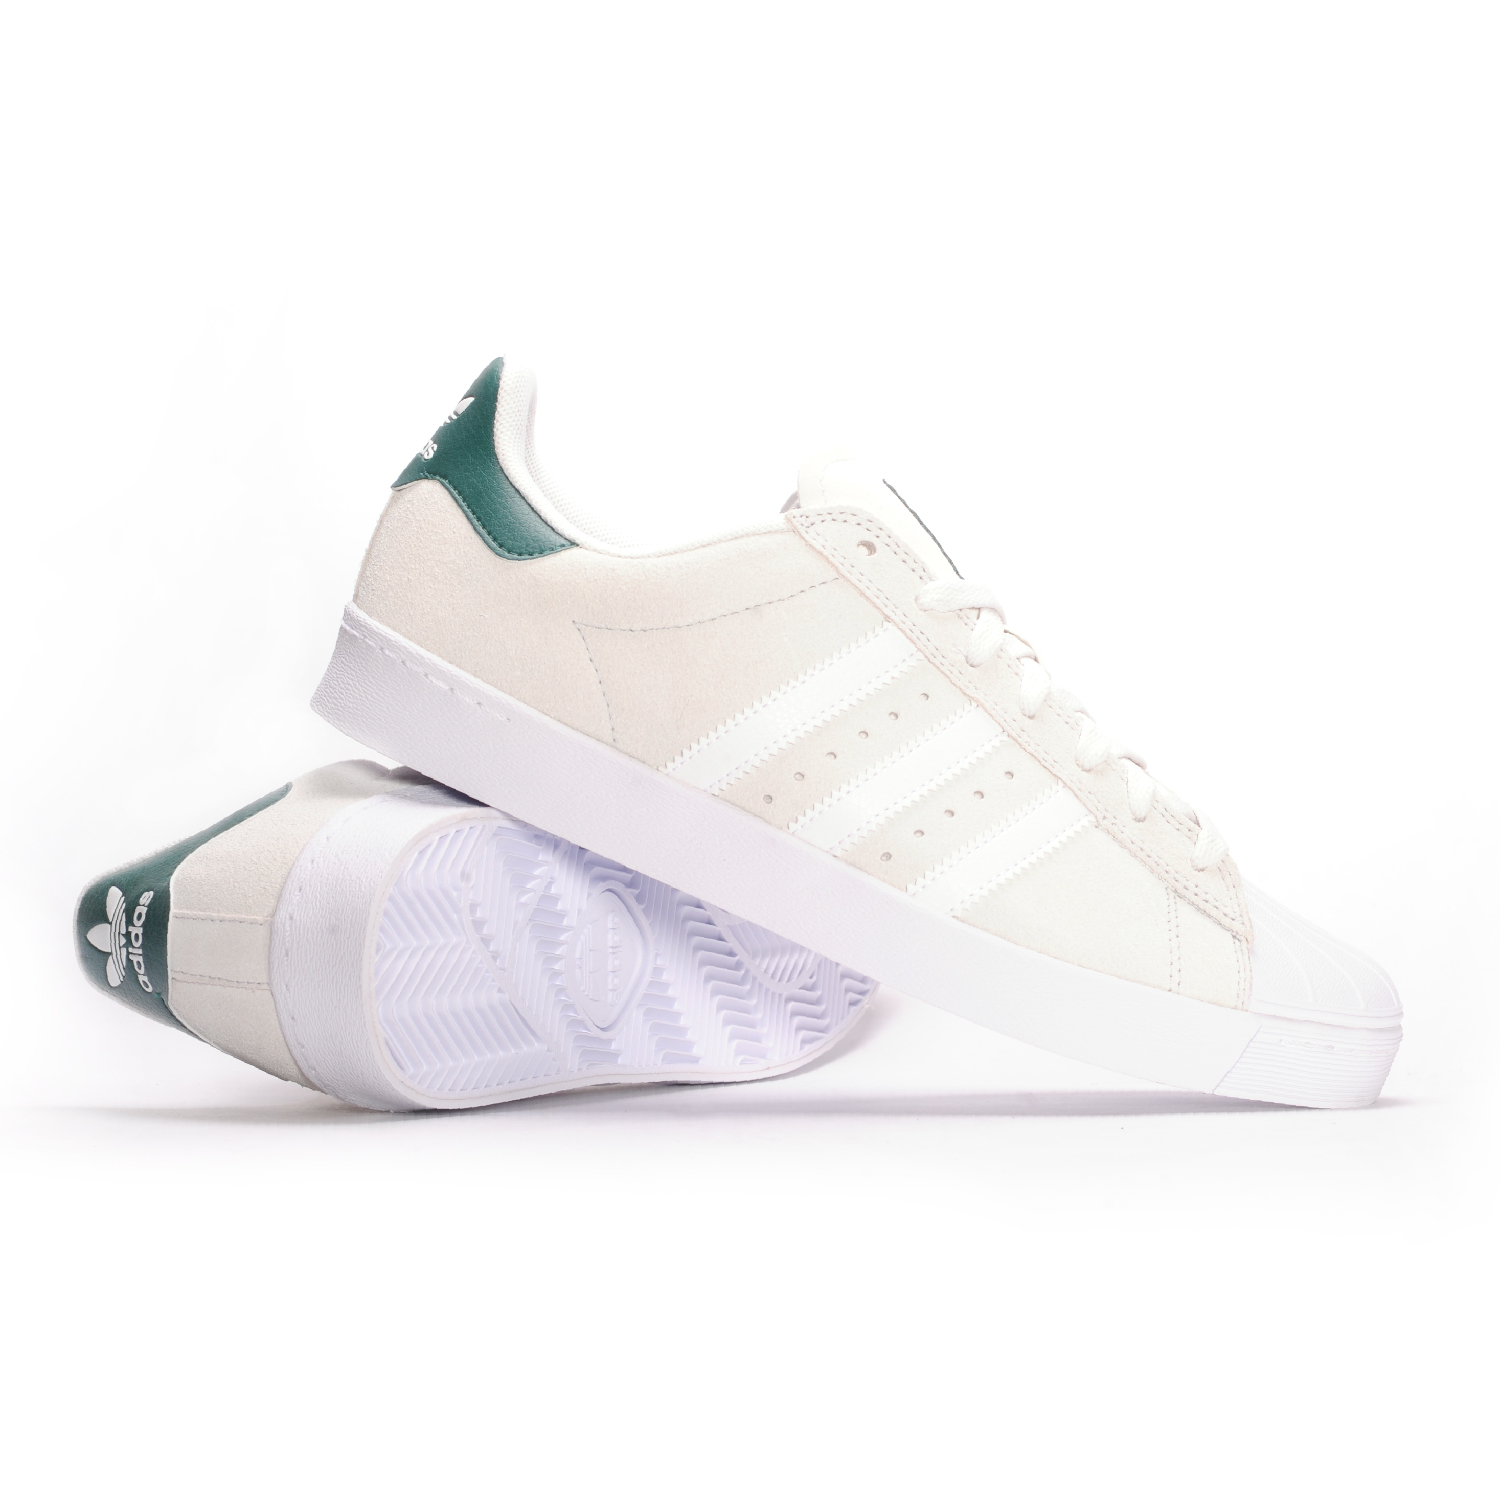 Adidas Superstar Vulc Adv Collegiate Burgundy Cream White Offspring